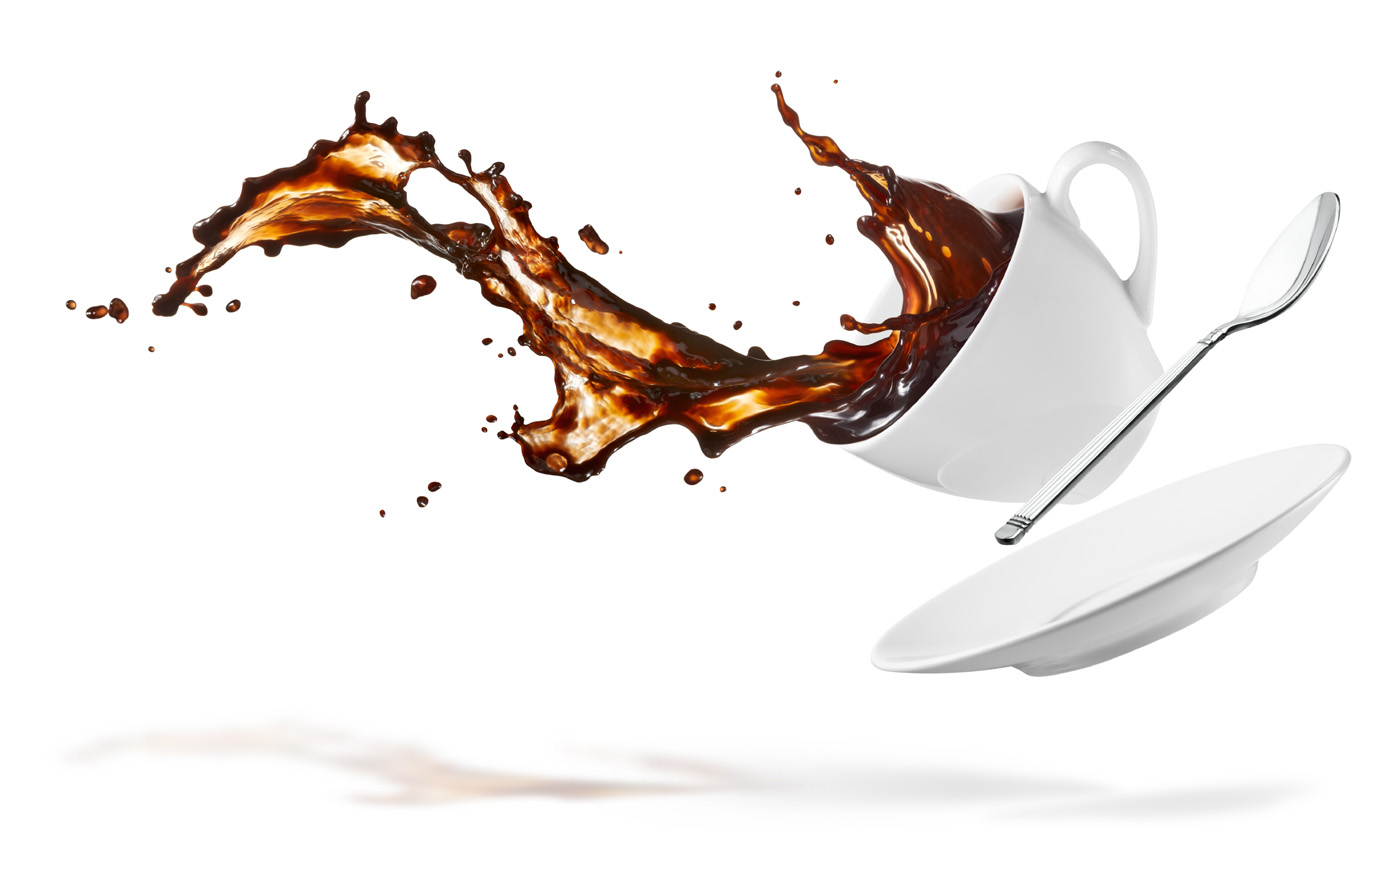 Spilled coffee mug with spoon 49997